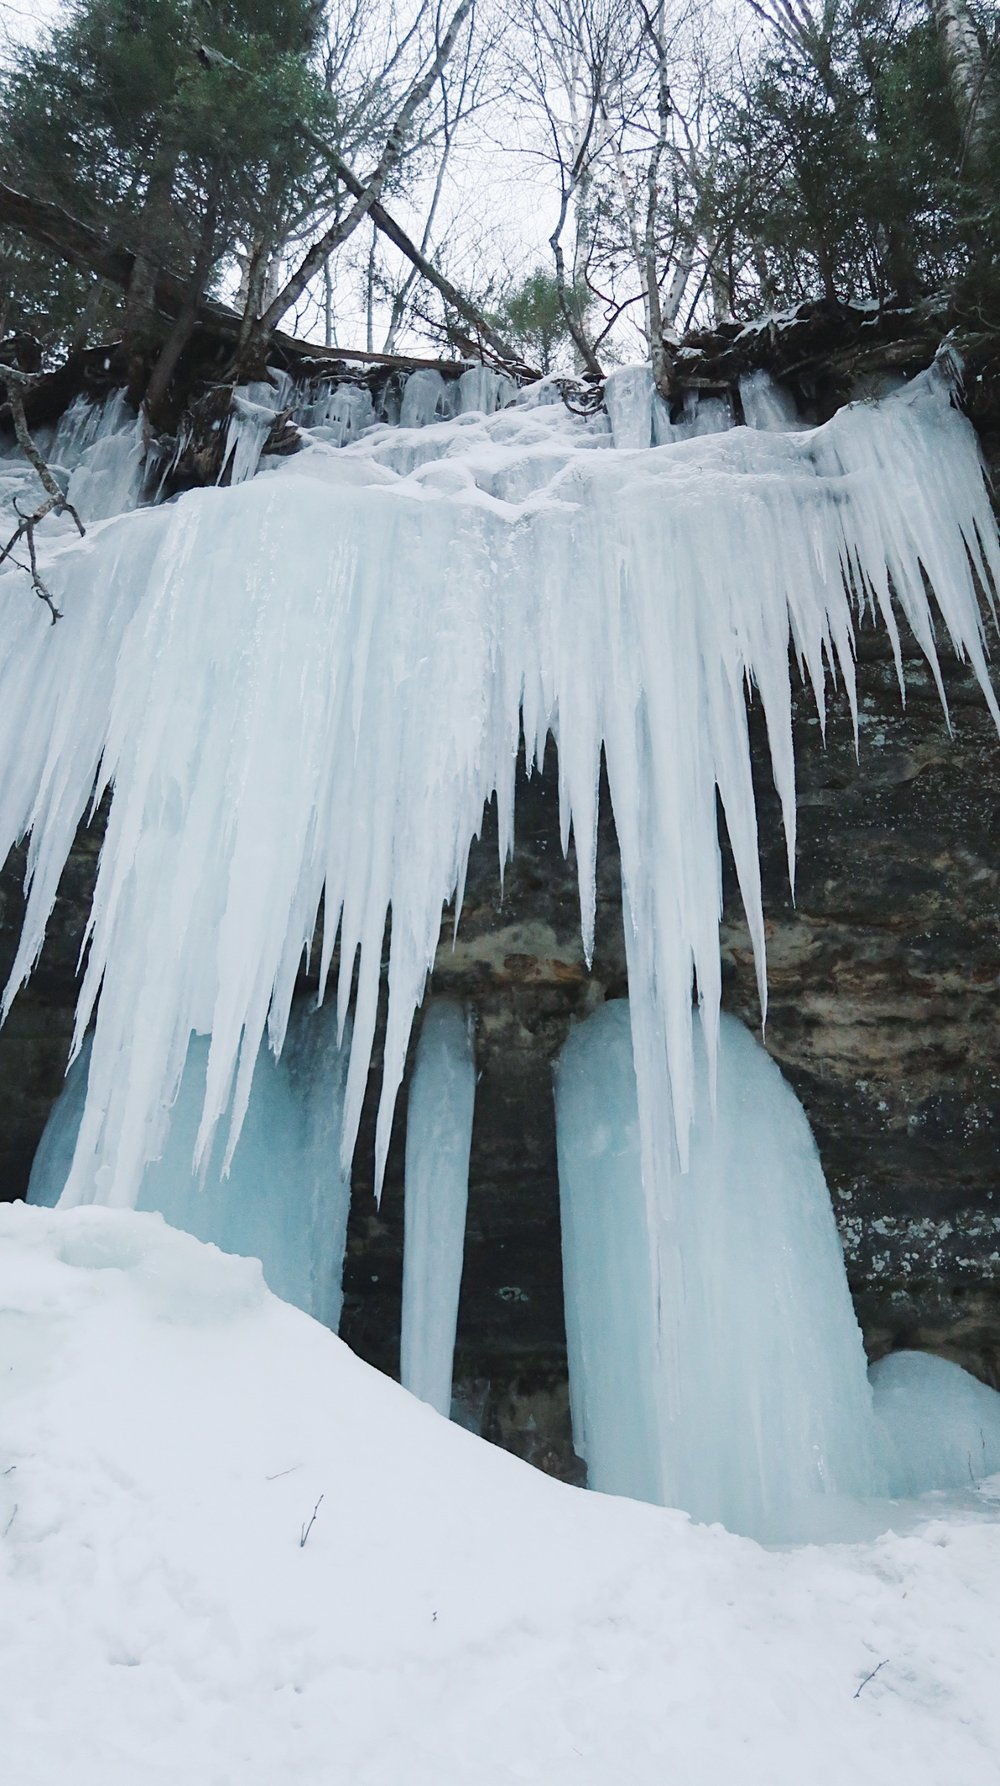 Ice Curtains at Pictured Rocks National Lakeshore